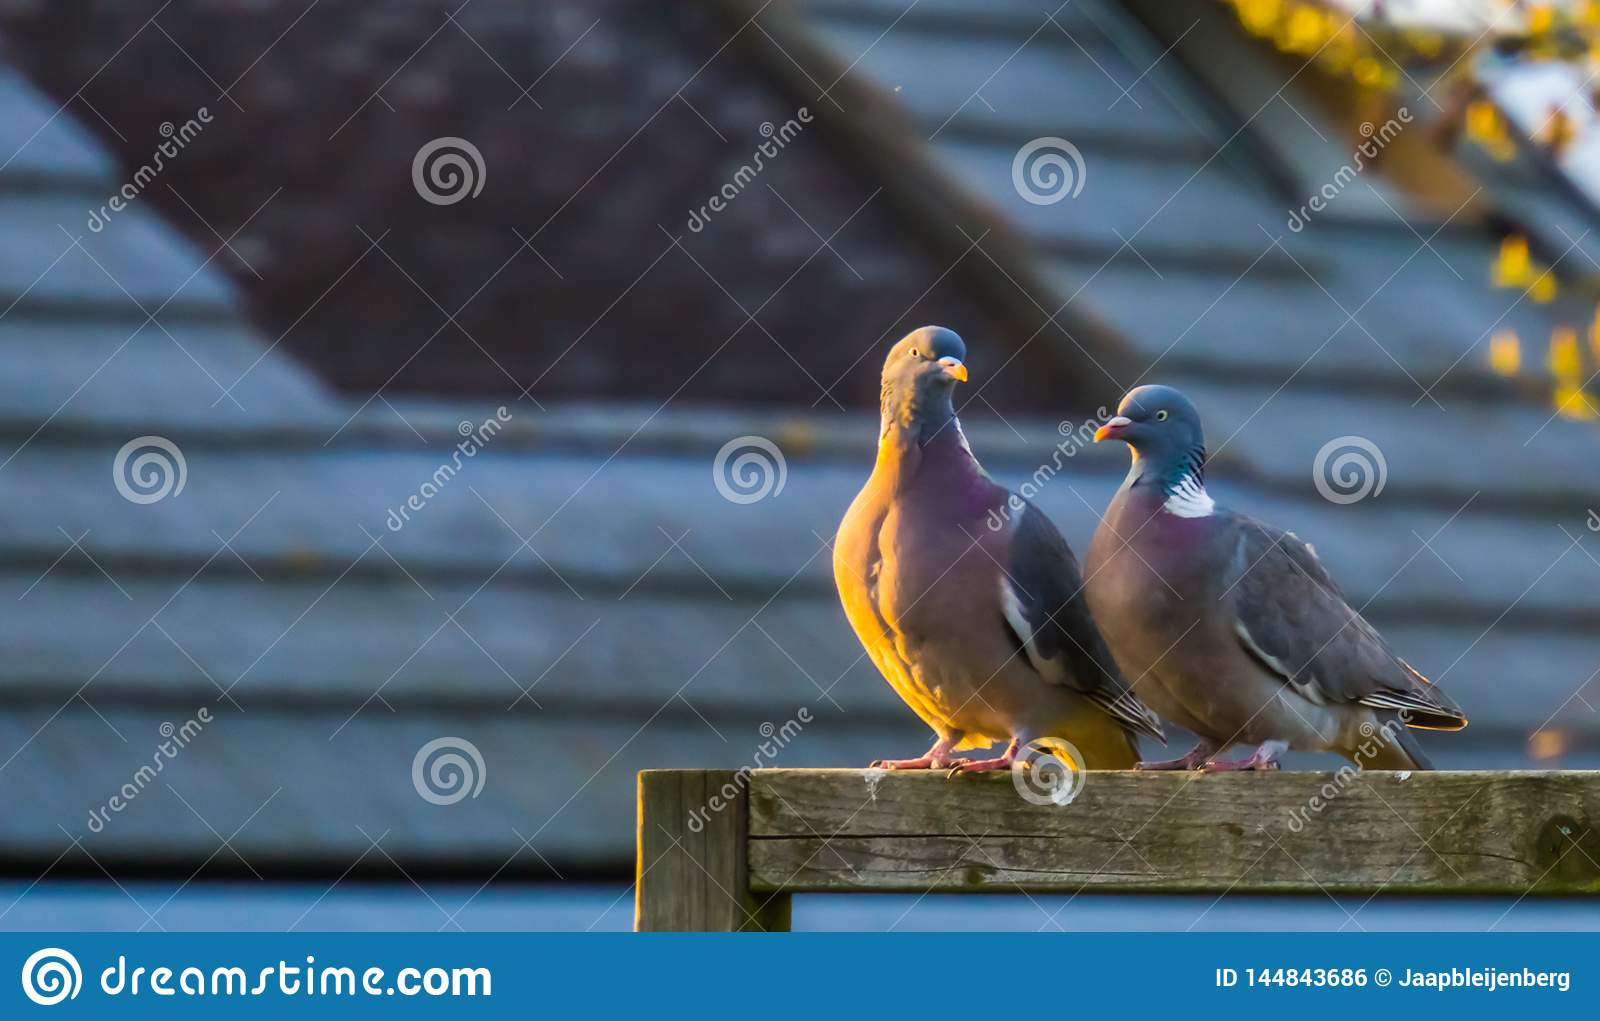 Couple of common wood doves sitting together on a wooden beam, common pigeons of europe